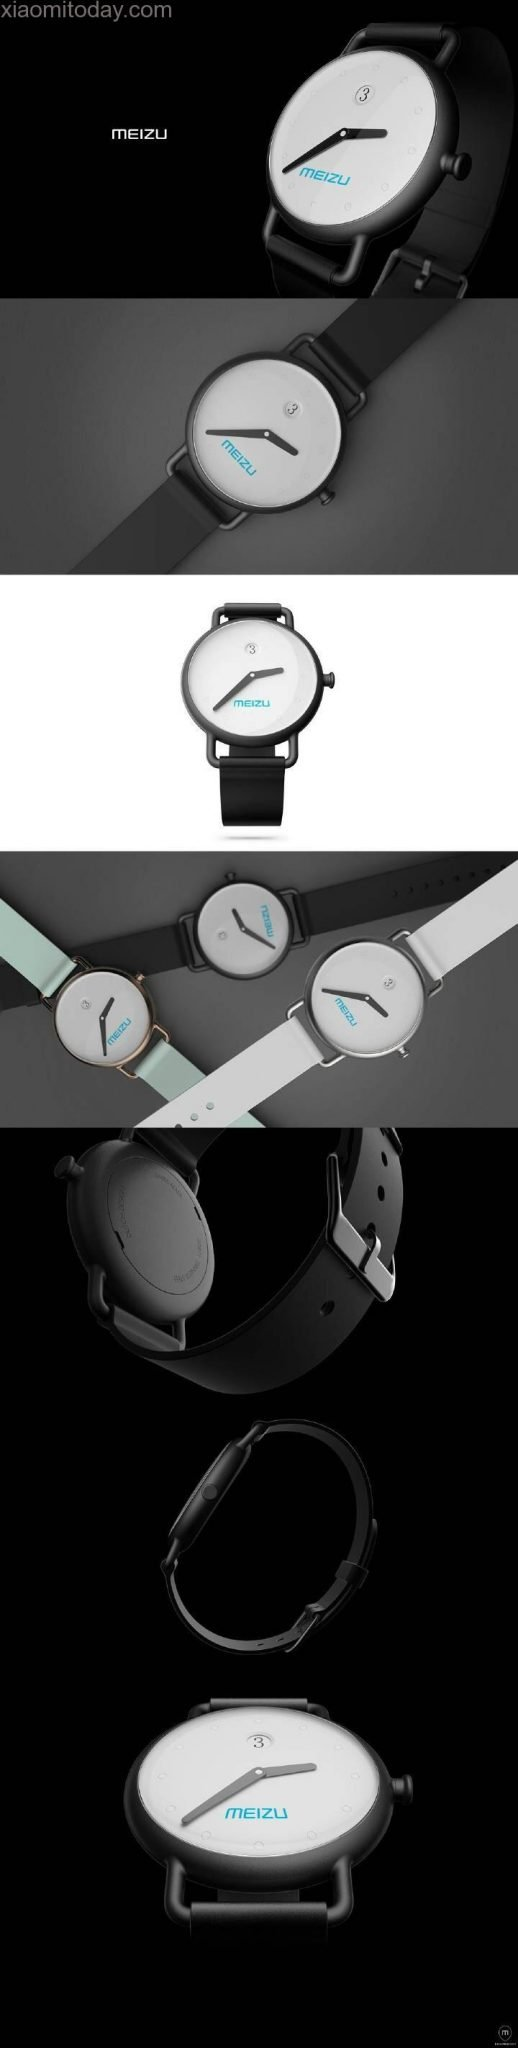 meizu-smartwatch-different-colors